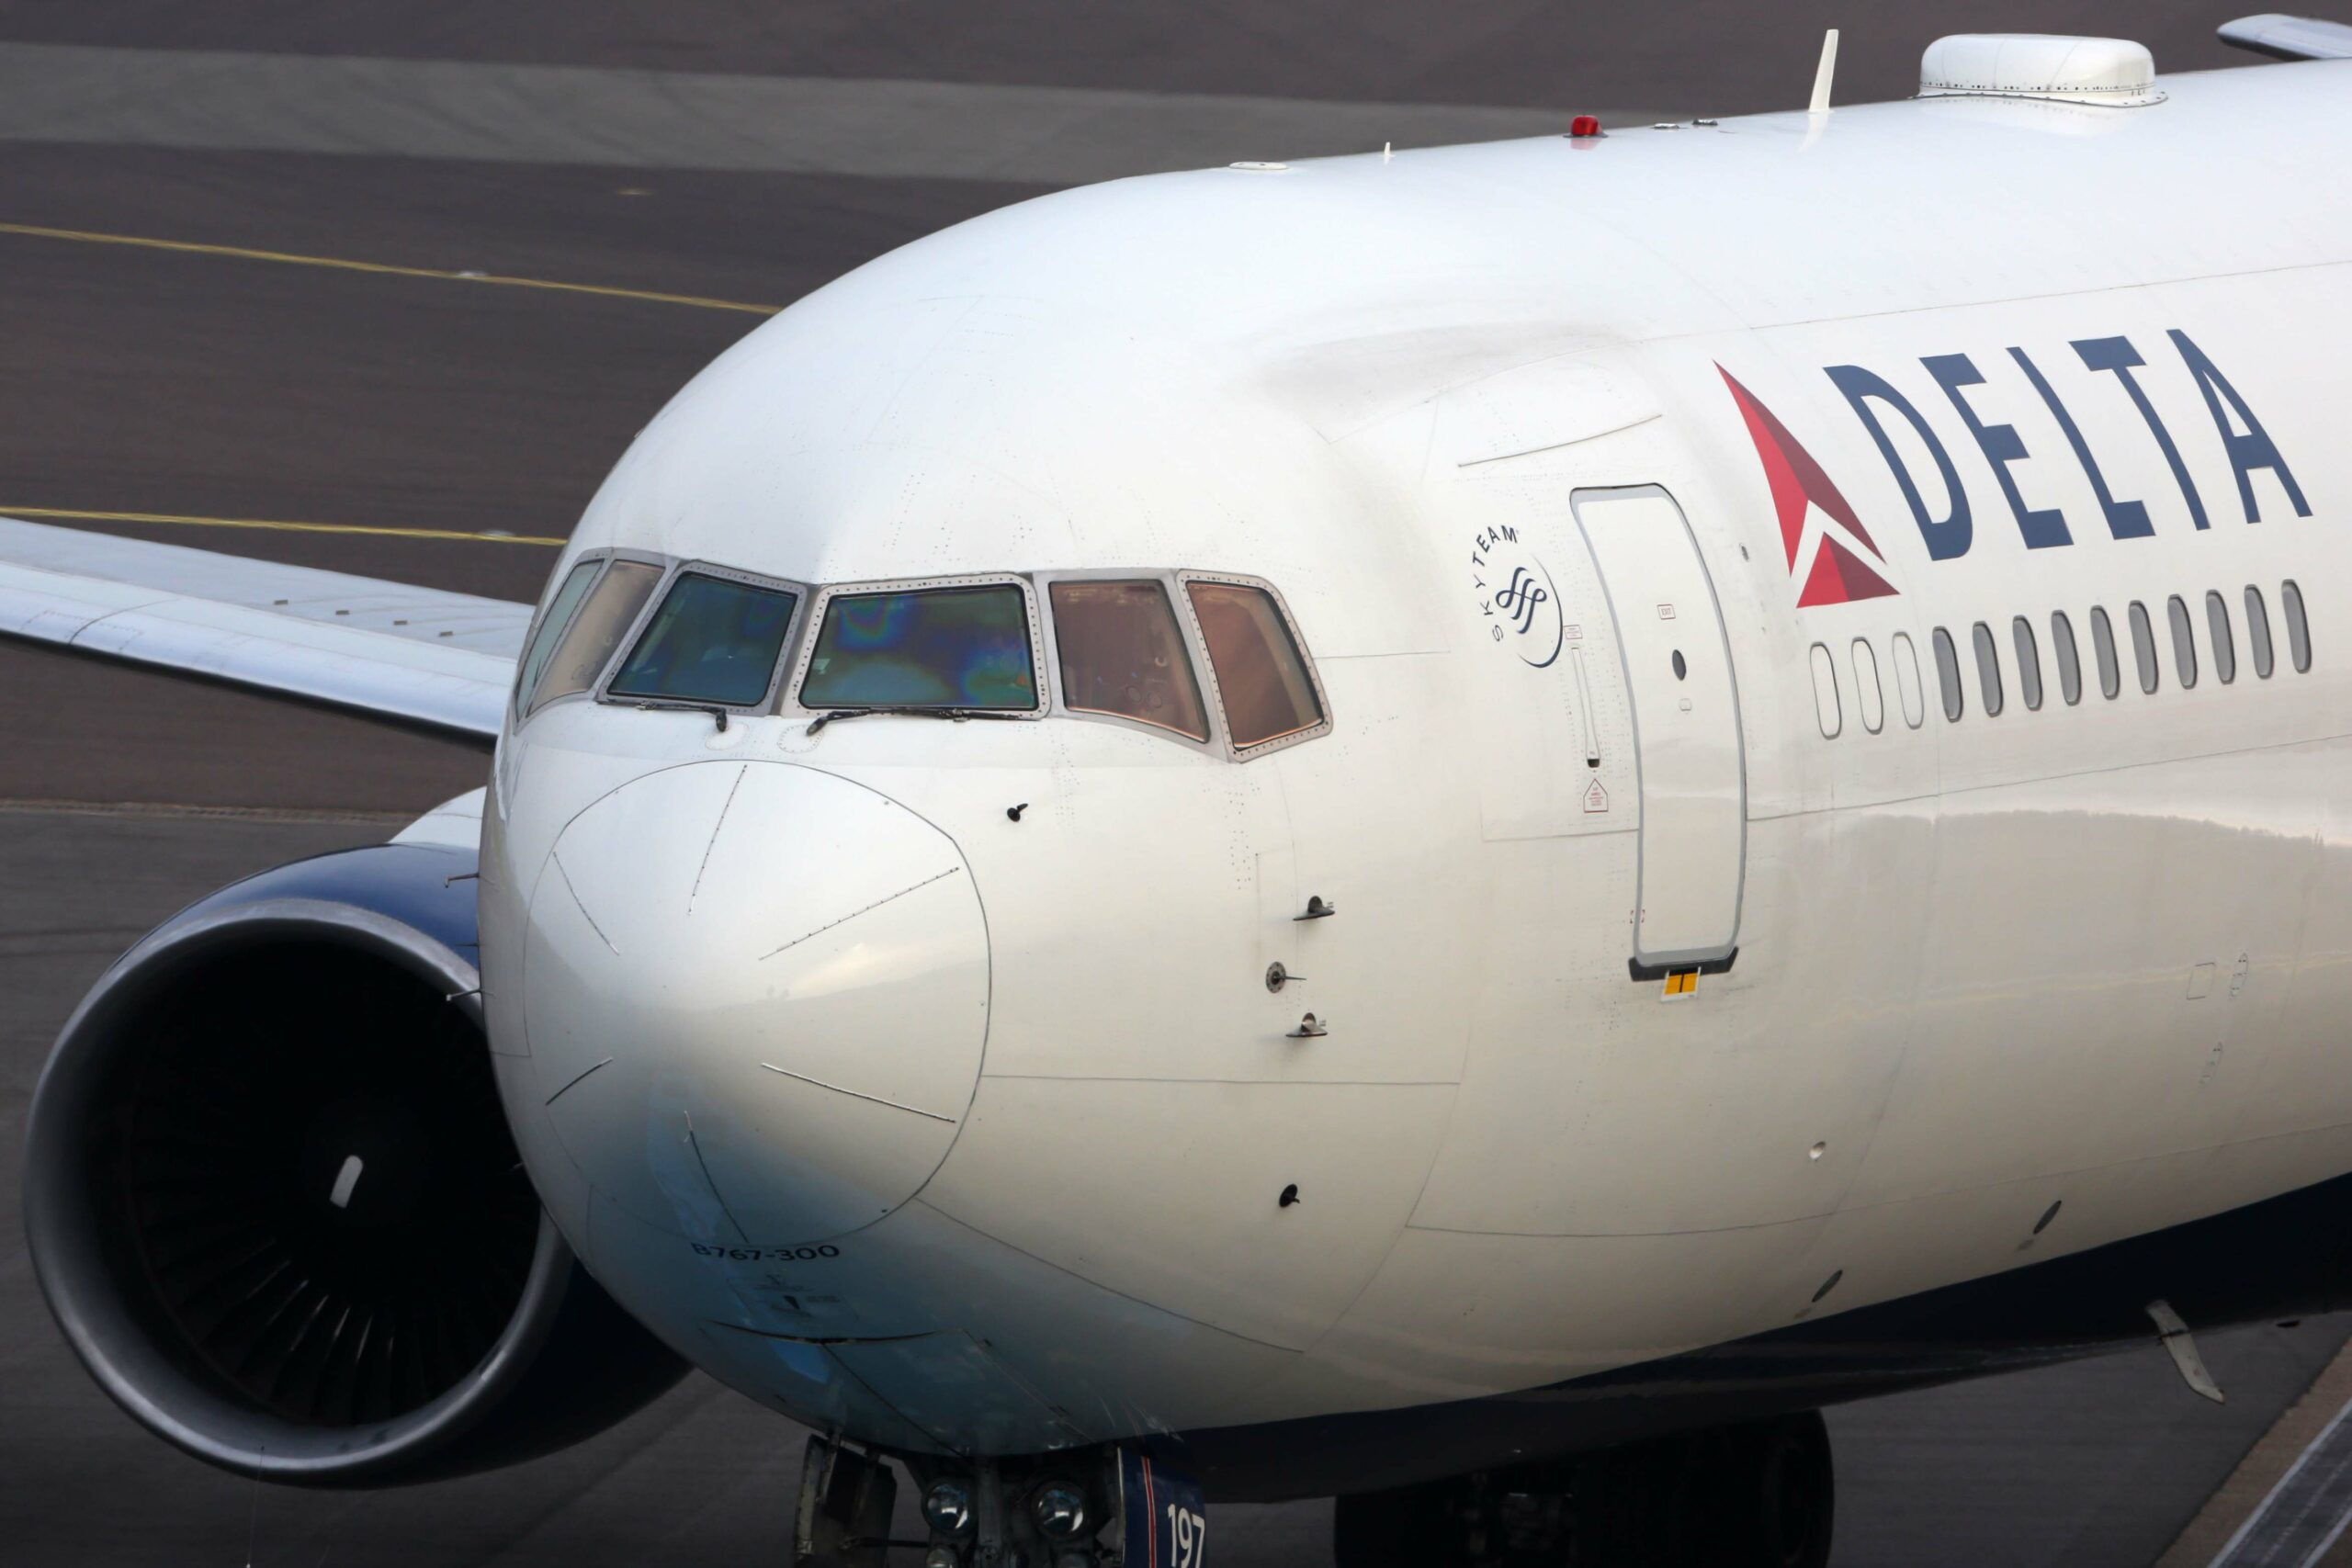 Delta Air Lines decreasing losses by $ 2.1 billion in Q4 2020 1